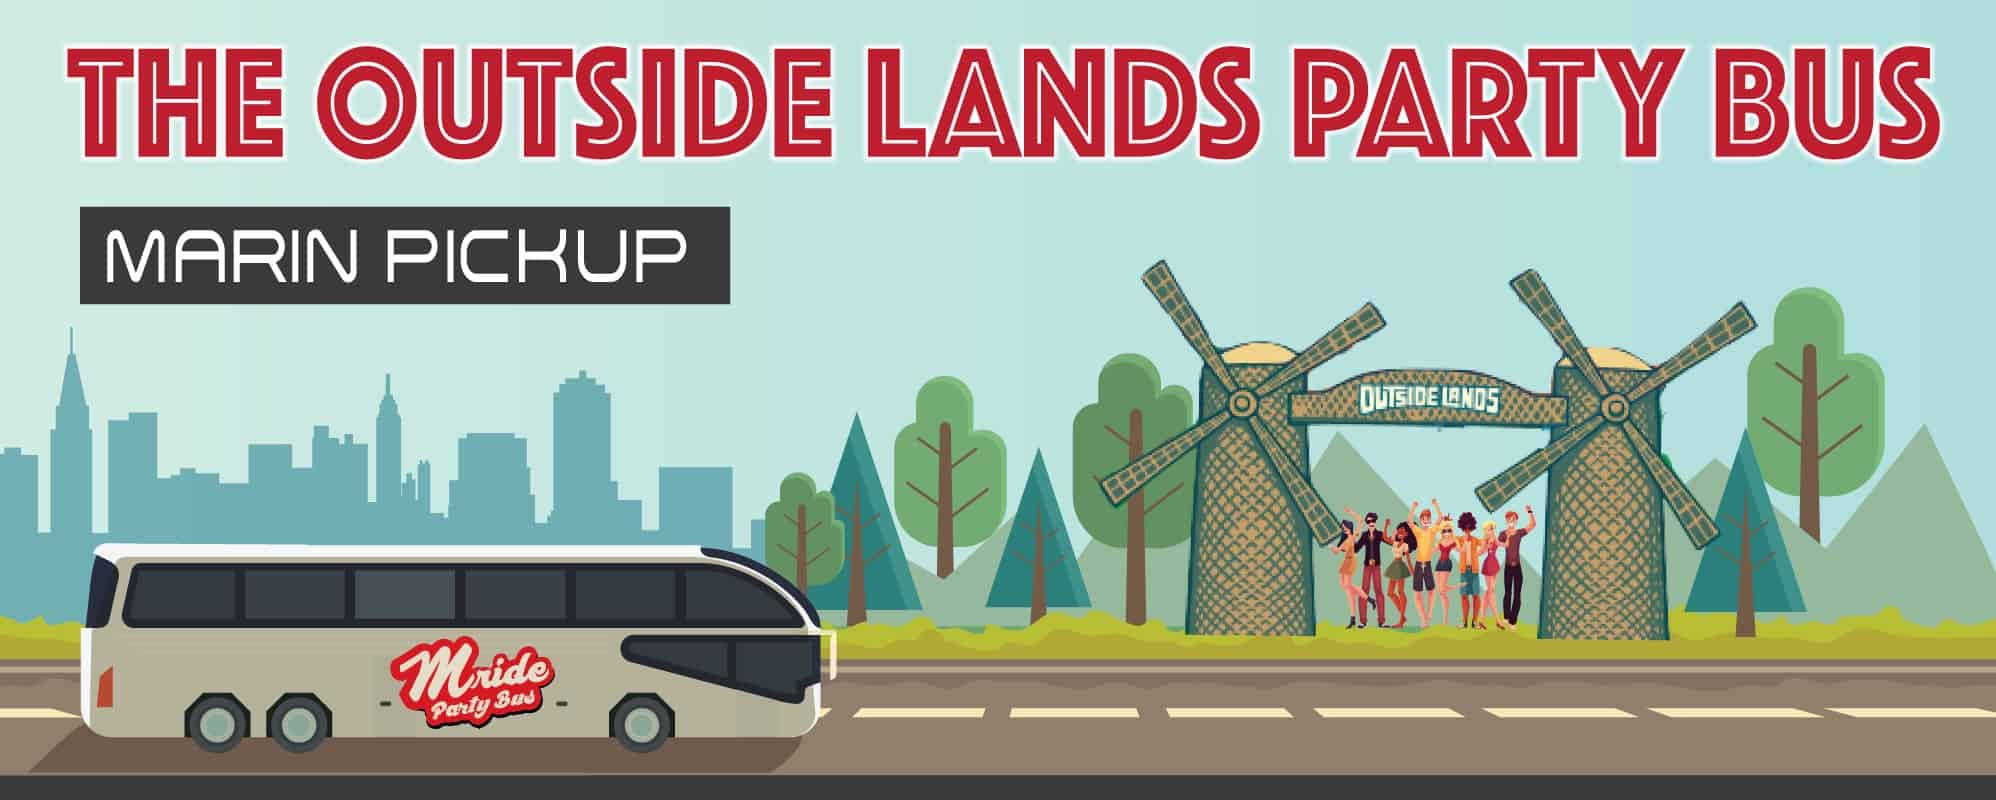 Outside Lands Party bus (Marin Pickup)